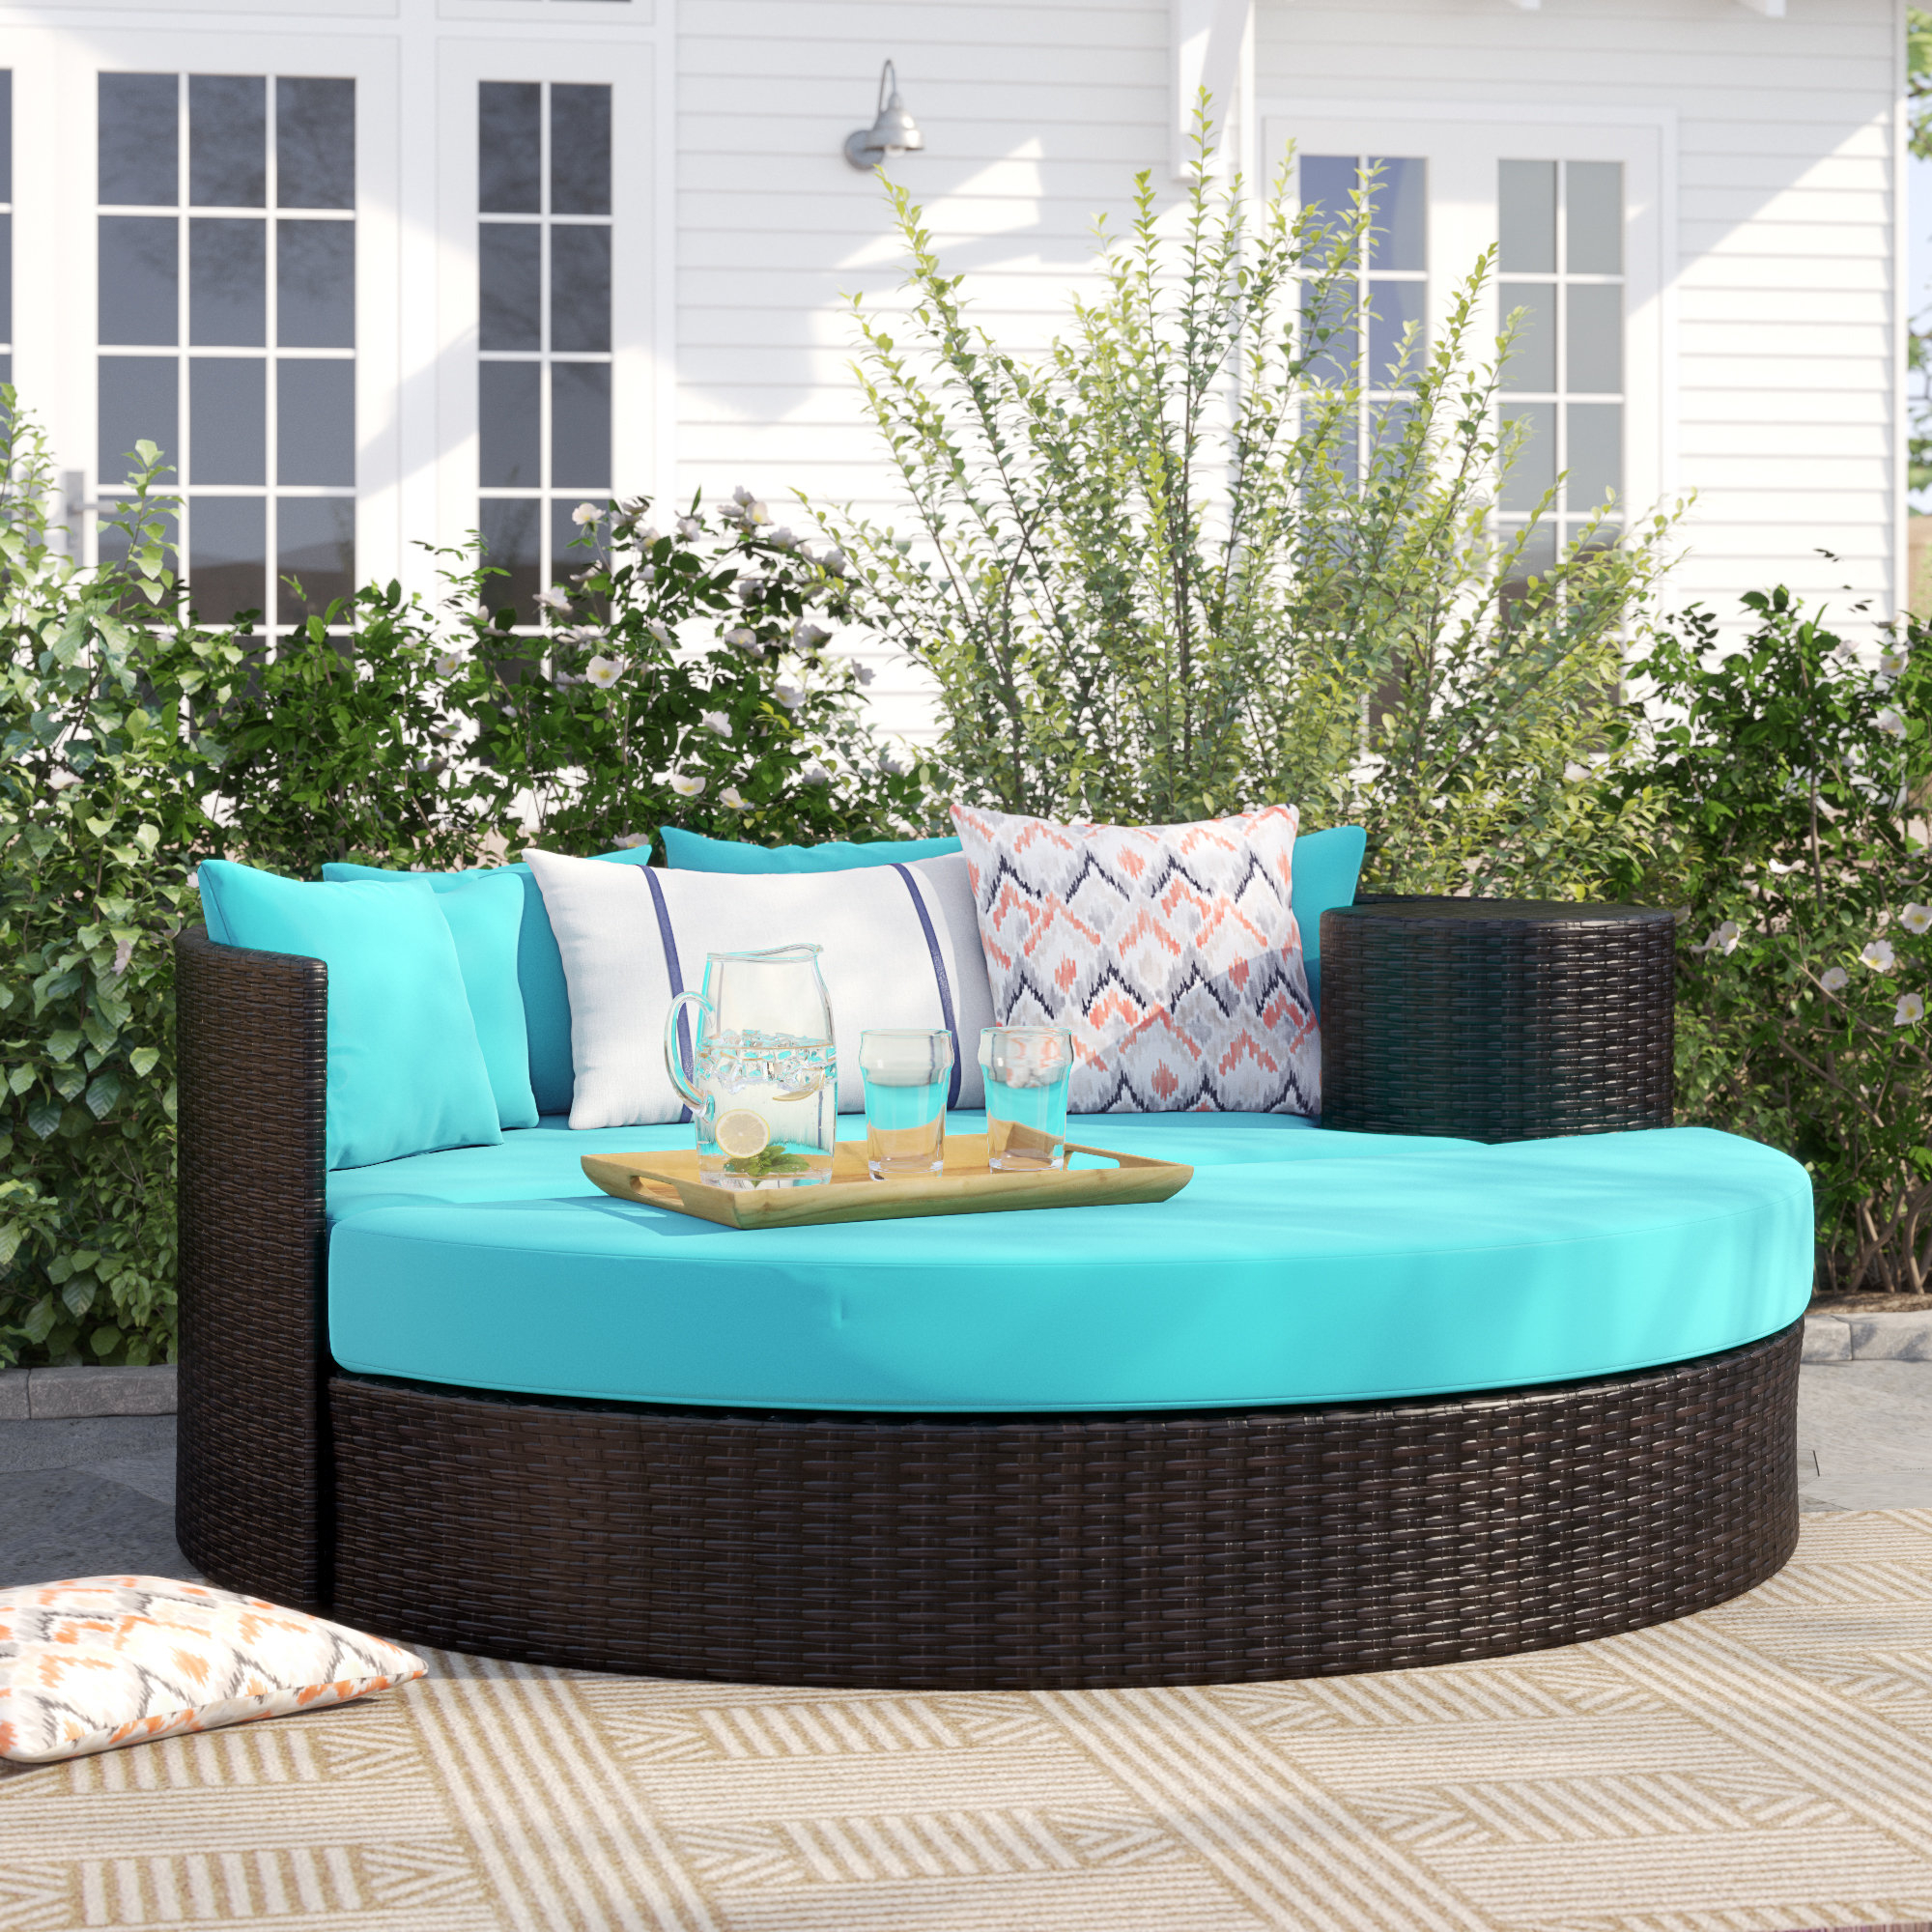 Well Liked Sol 72 Outdoor Freeport Patio Daybed With Cushion & Reviews With Leiston Round Patio Daybeds With Cushions (View 9 of 20)